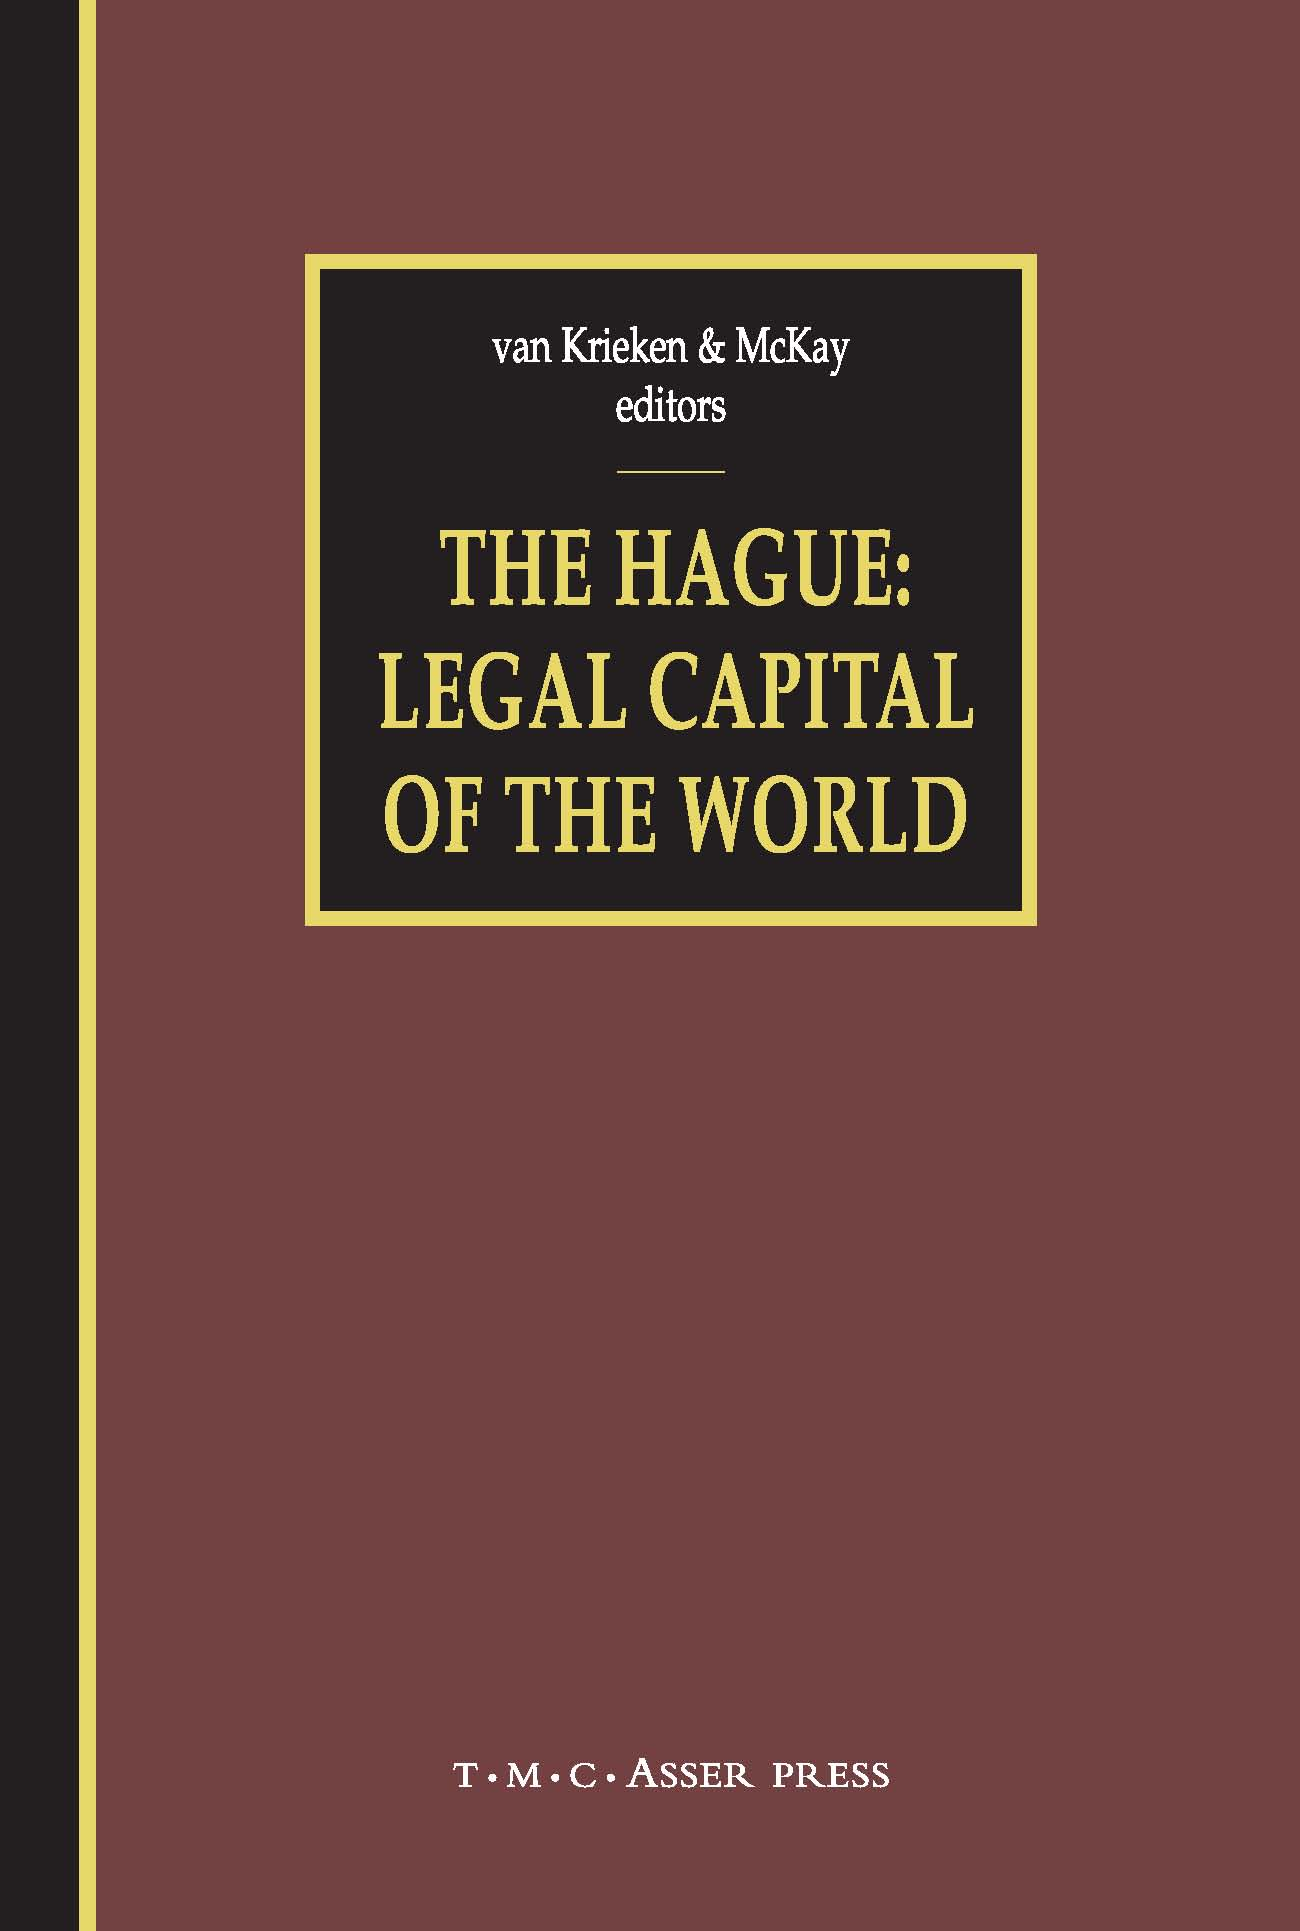 The Hague: Legal Capital of the World